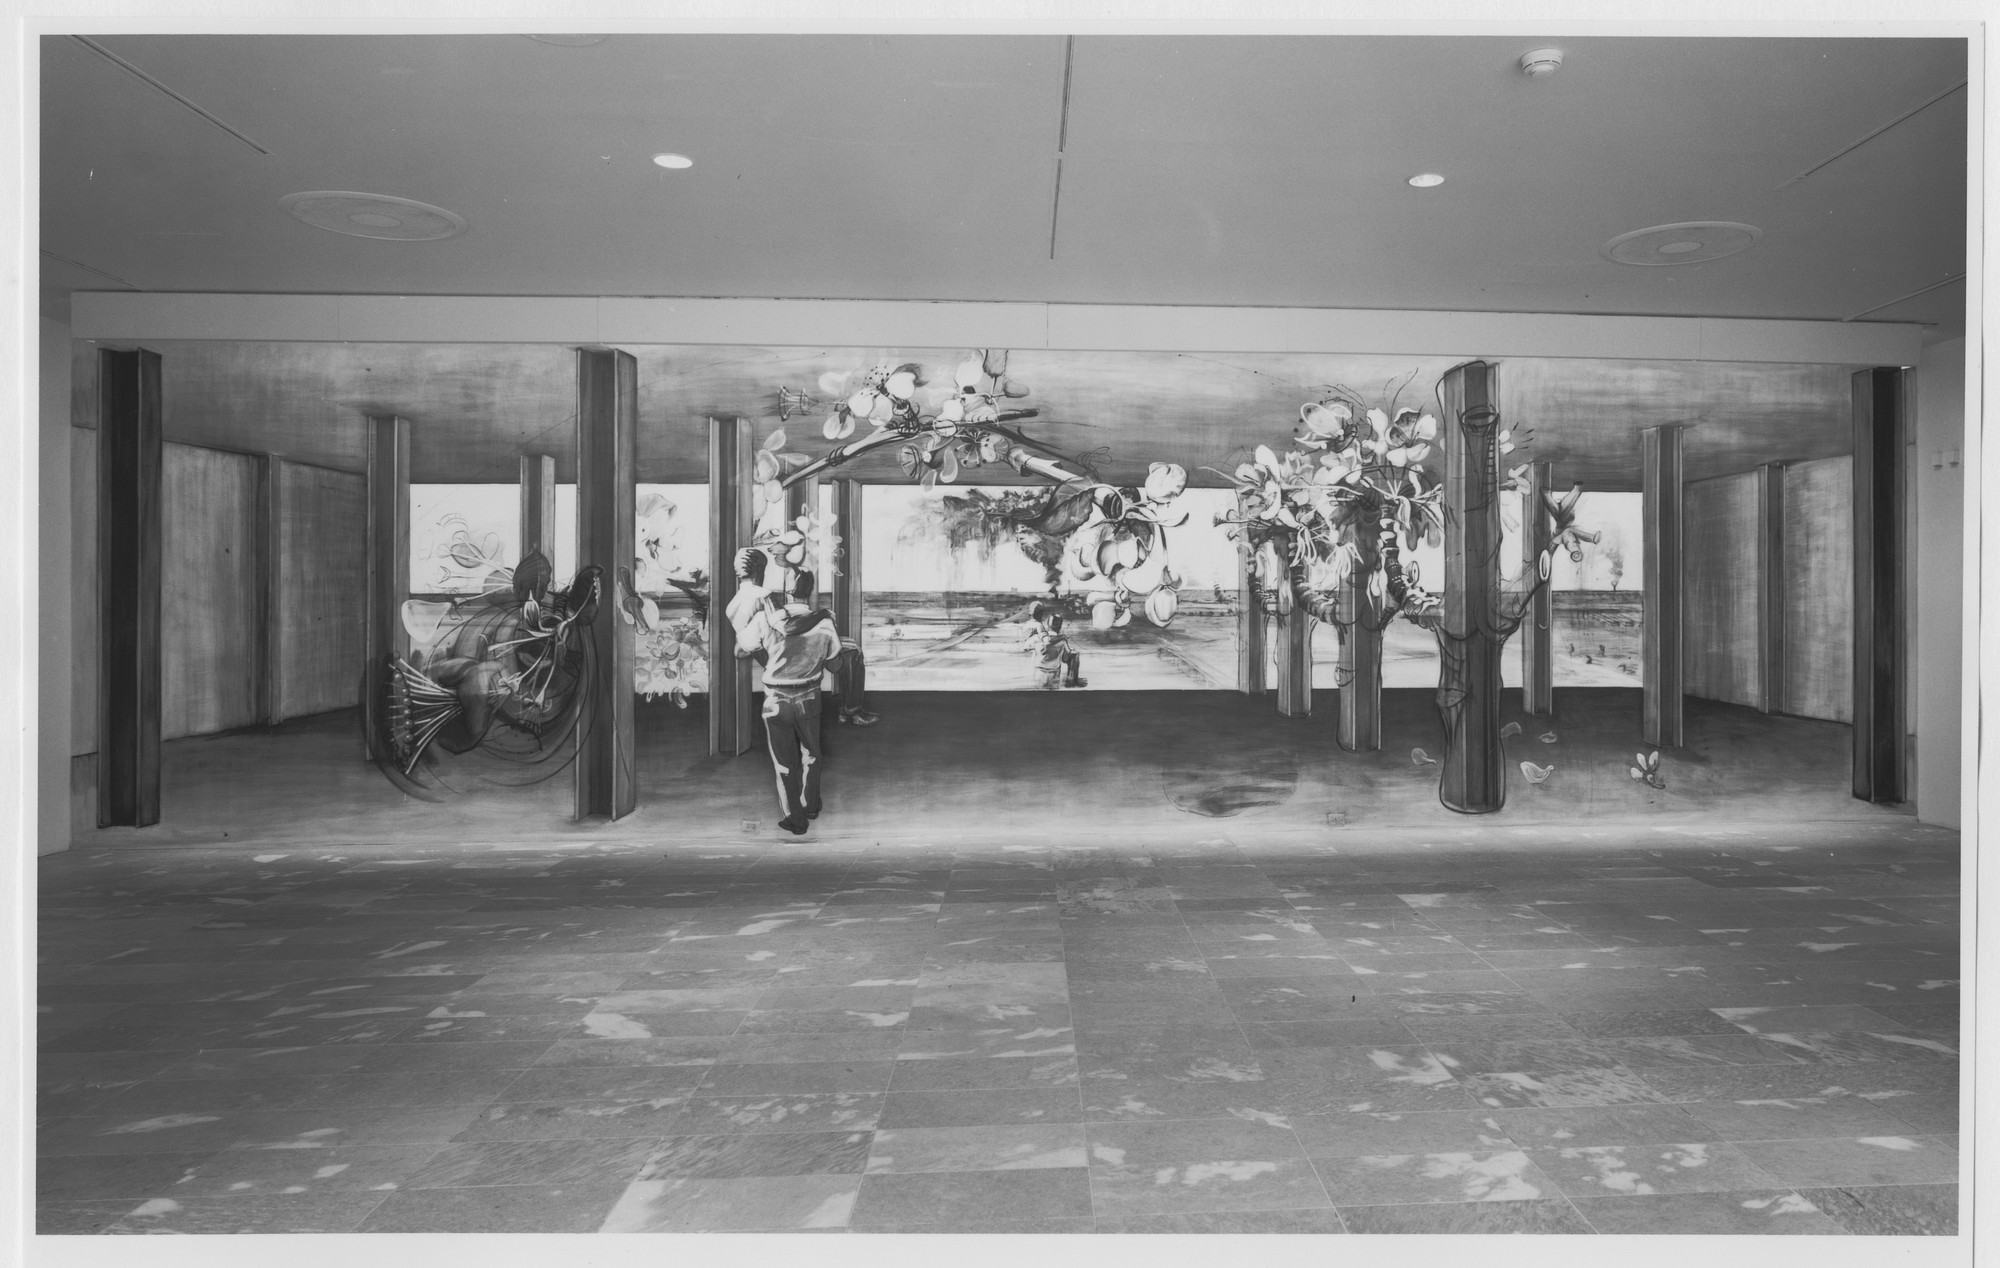 "Installation view of the exhibition, ""Projects: Mike Glier"" May 9, 1987–July 7, 1987. Photographic Archive. The Museum of Modern Art Archives, New York. IN1448.1. Photograph by Mali Olatunji."